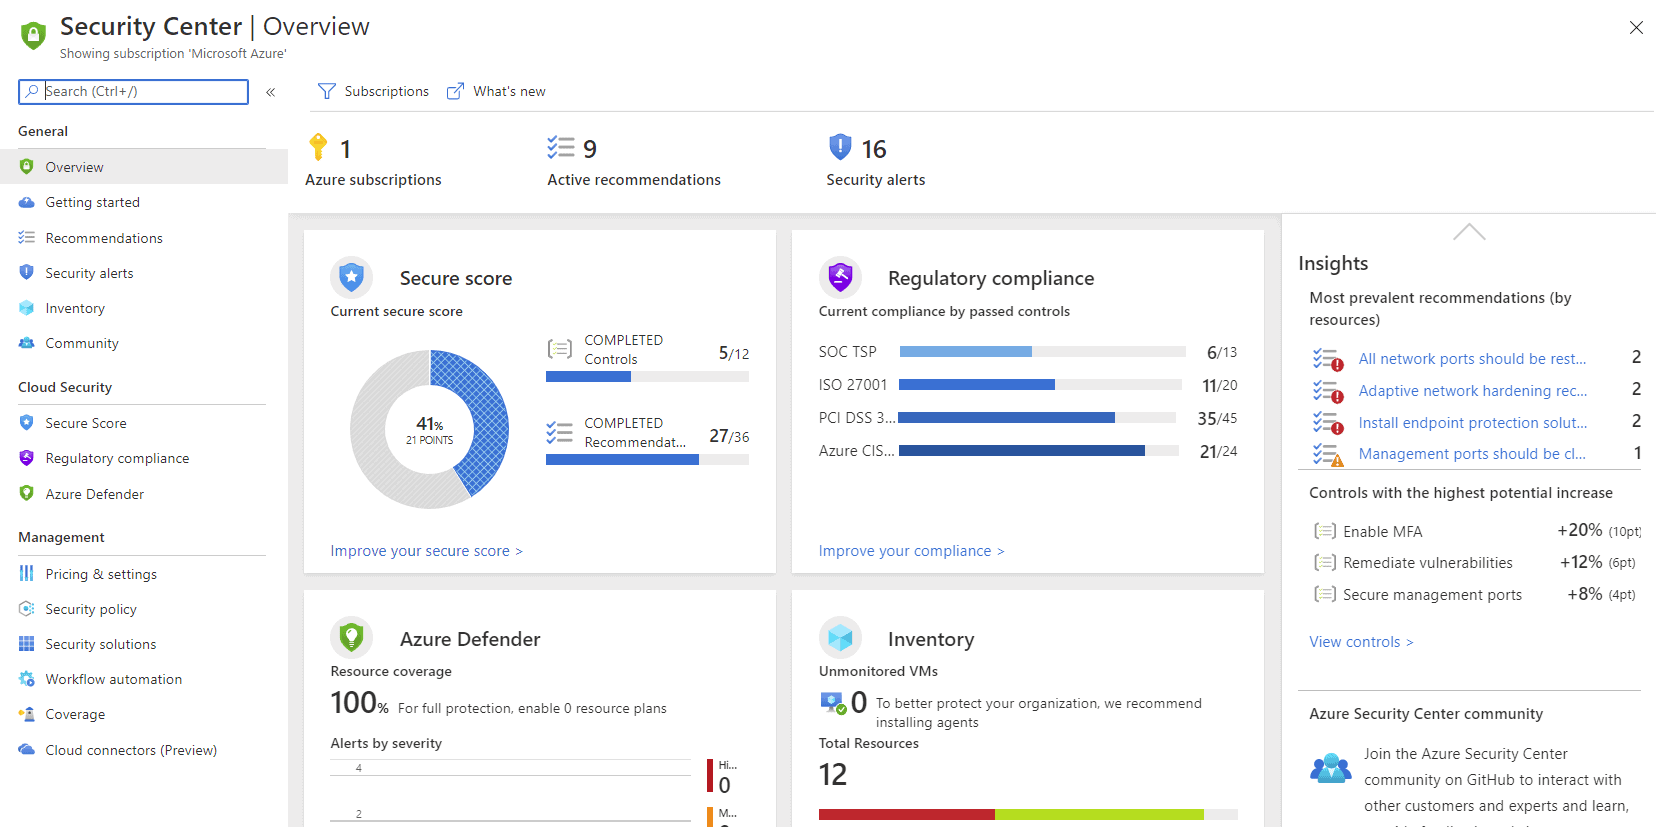 Azure Security Center Overview blade